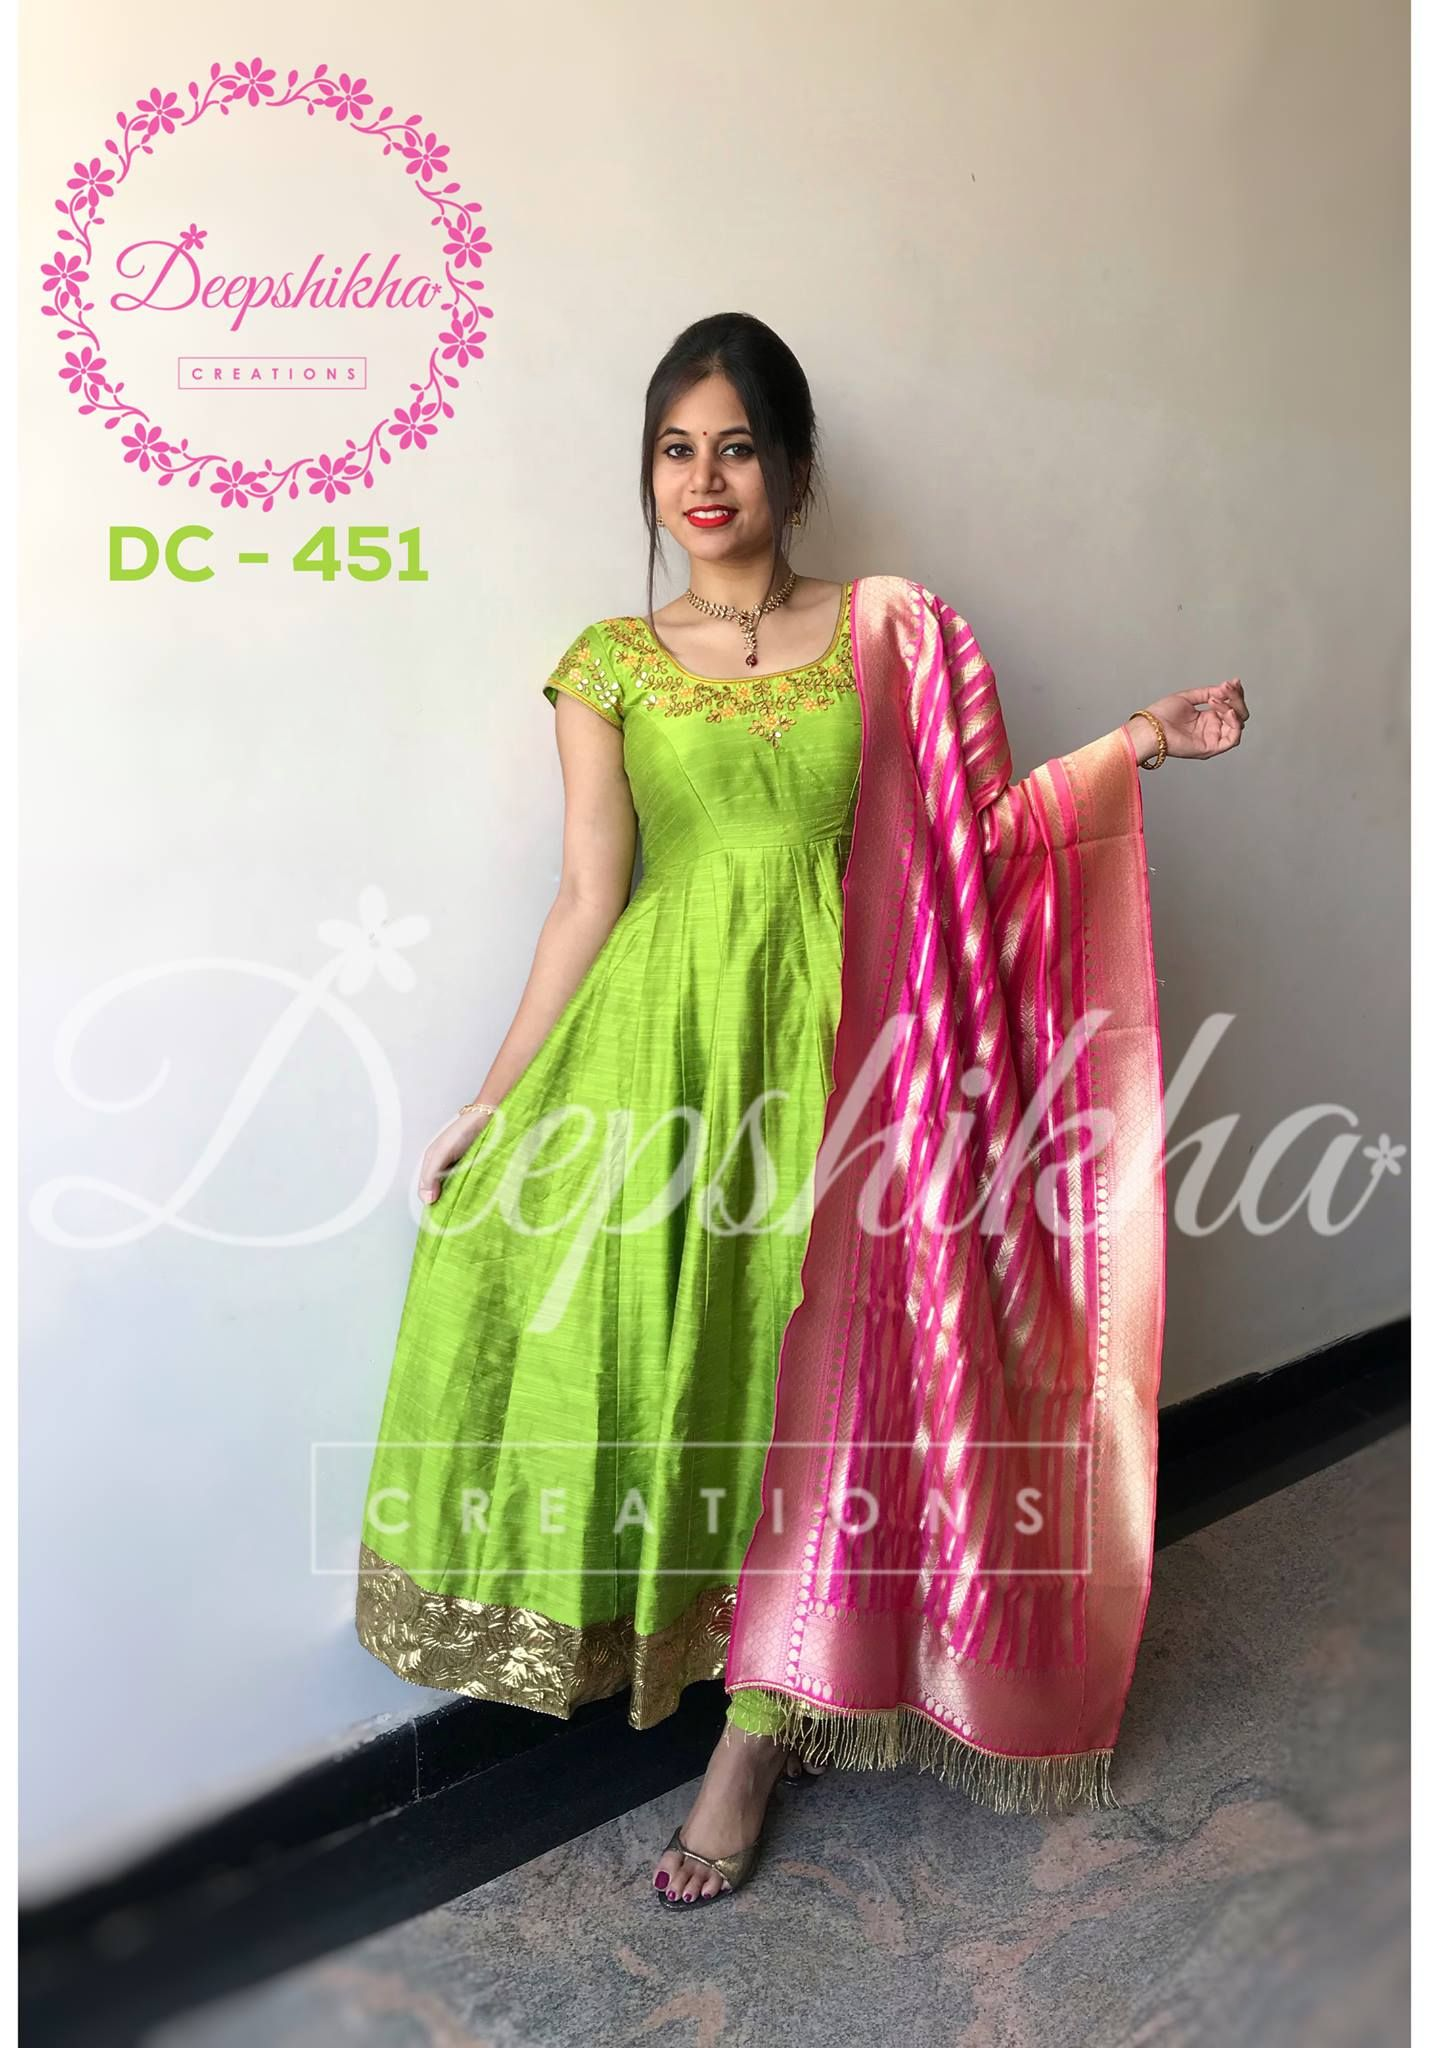 078efcf9b9 Beautiful parrot green color floor lenght anarkali dress with banarasi  dupatta.For queries kindly WhatsApp: +91 9059683293 . 23 December 2017